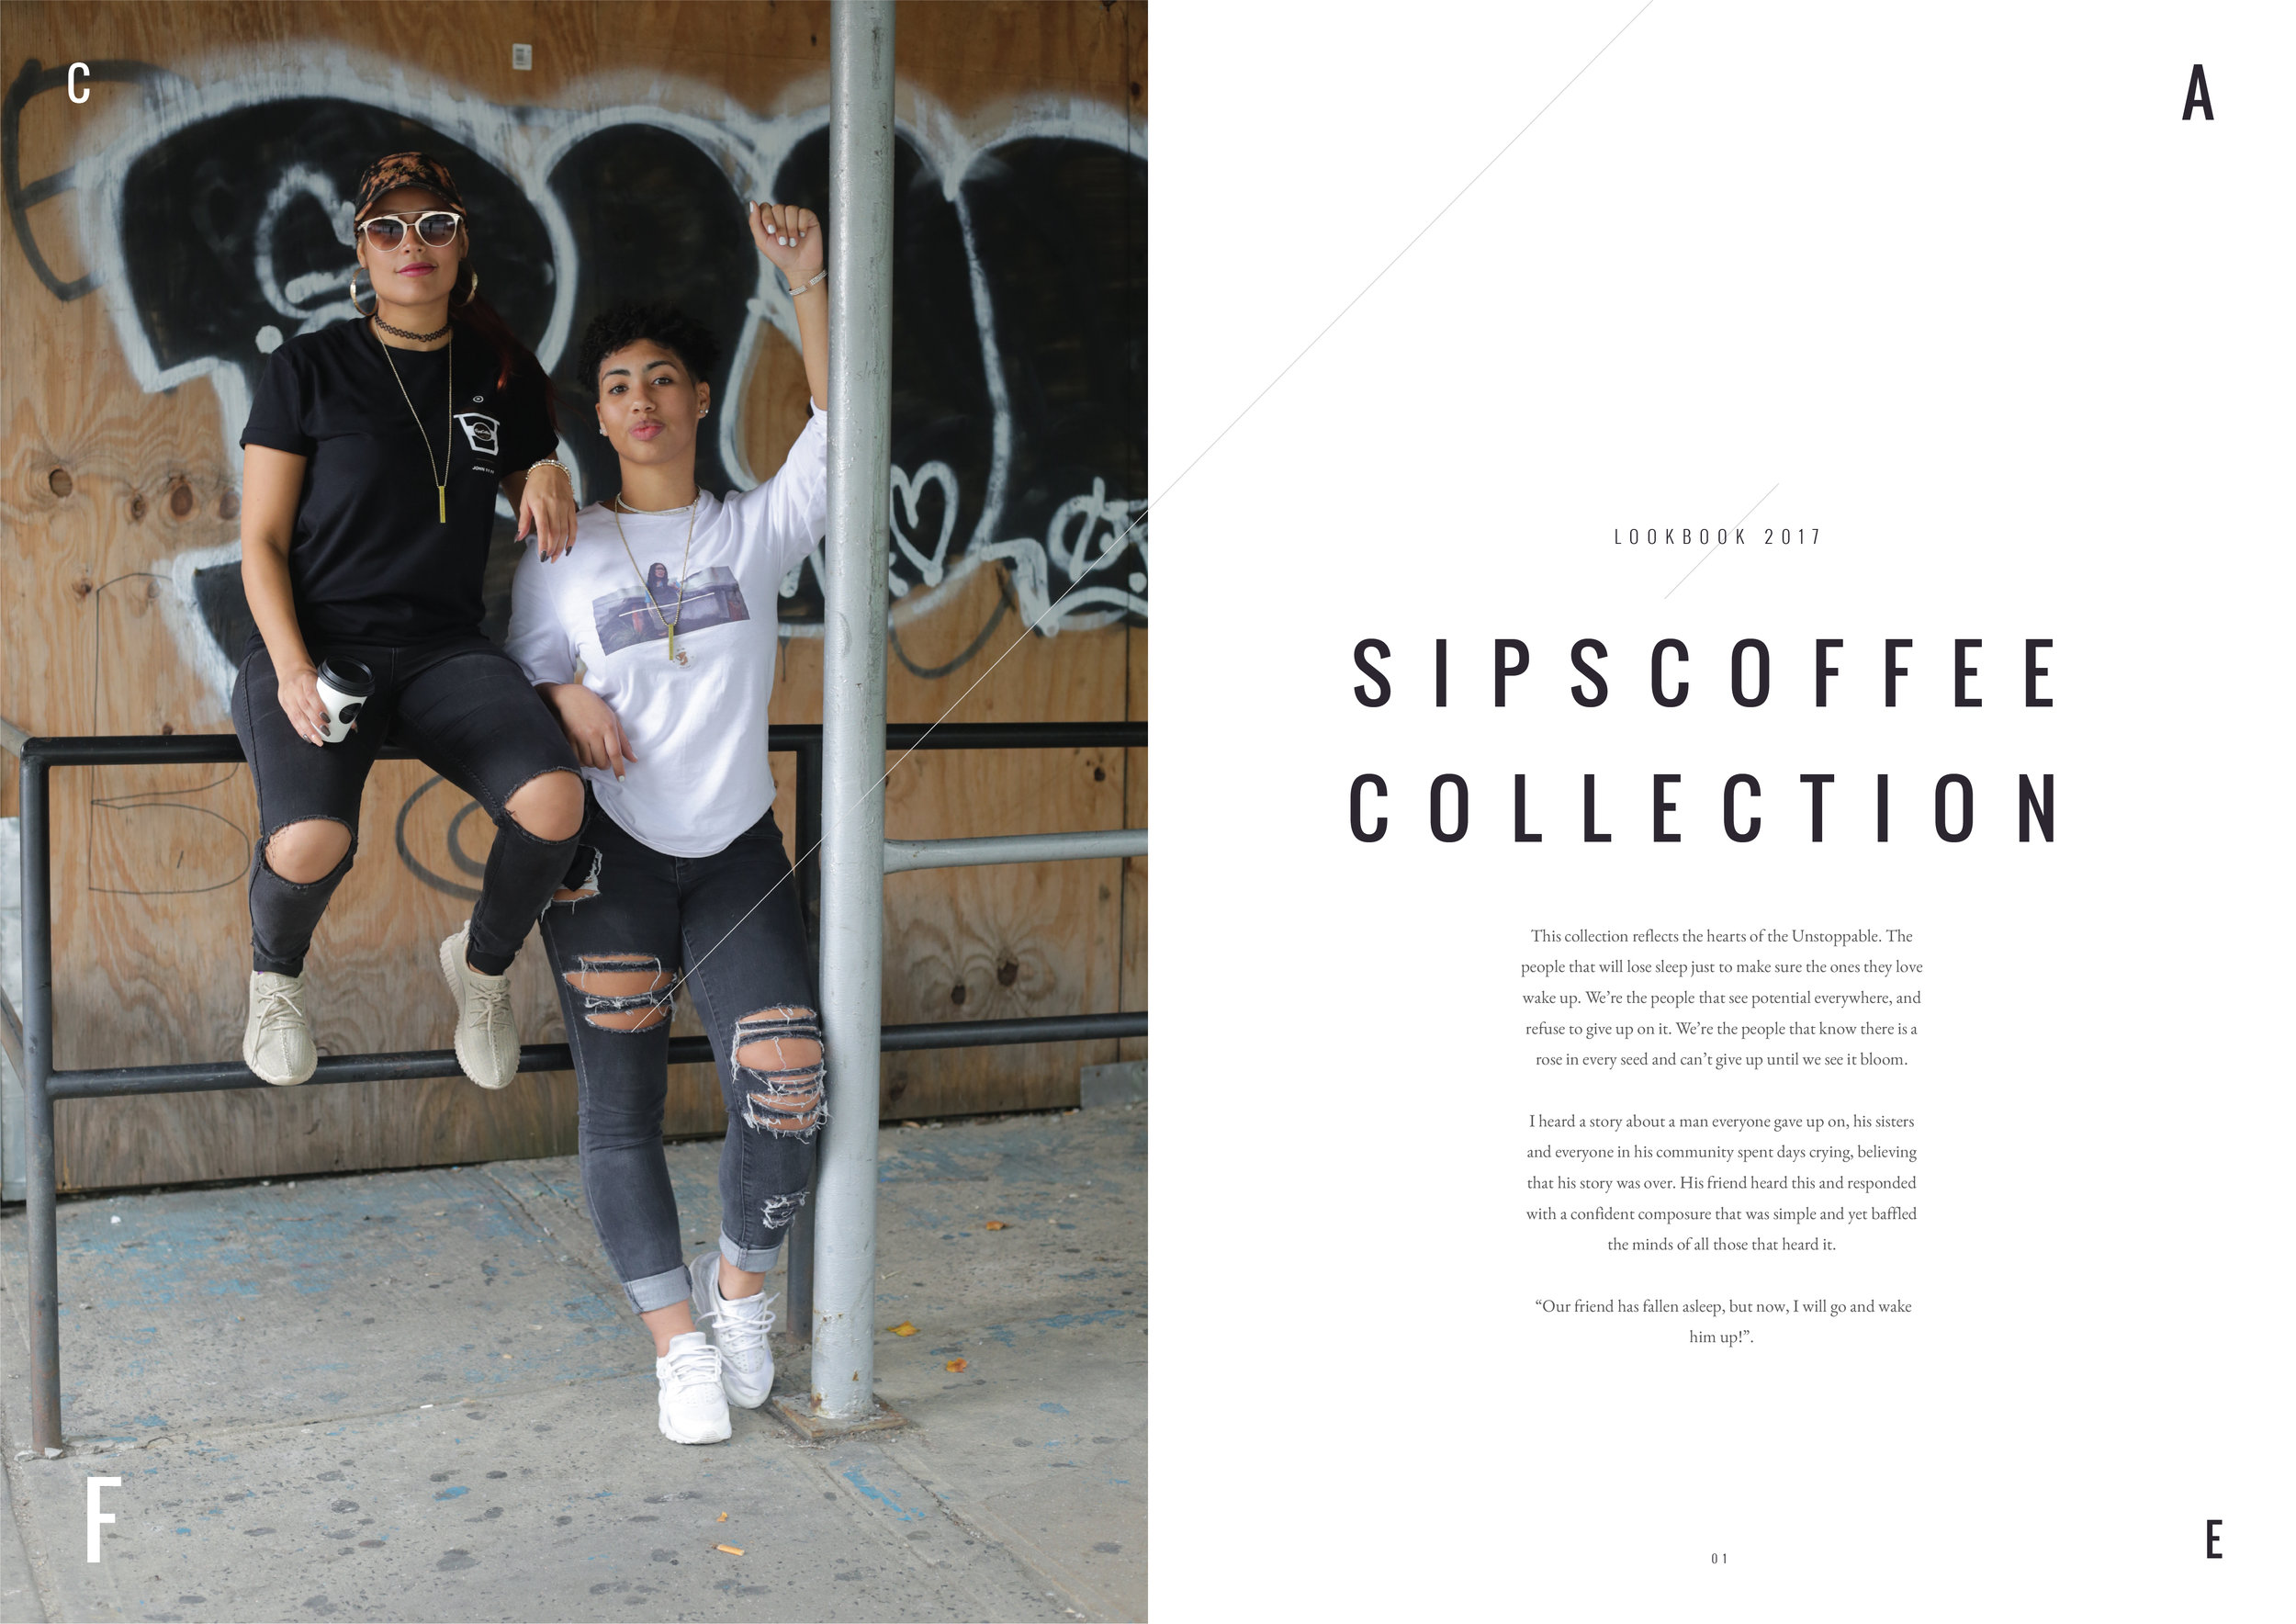 SipsCoffeeCollection_LookBook_Cover In - Page 1.jpg